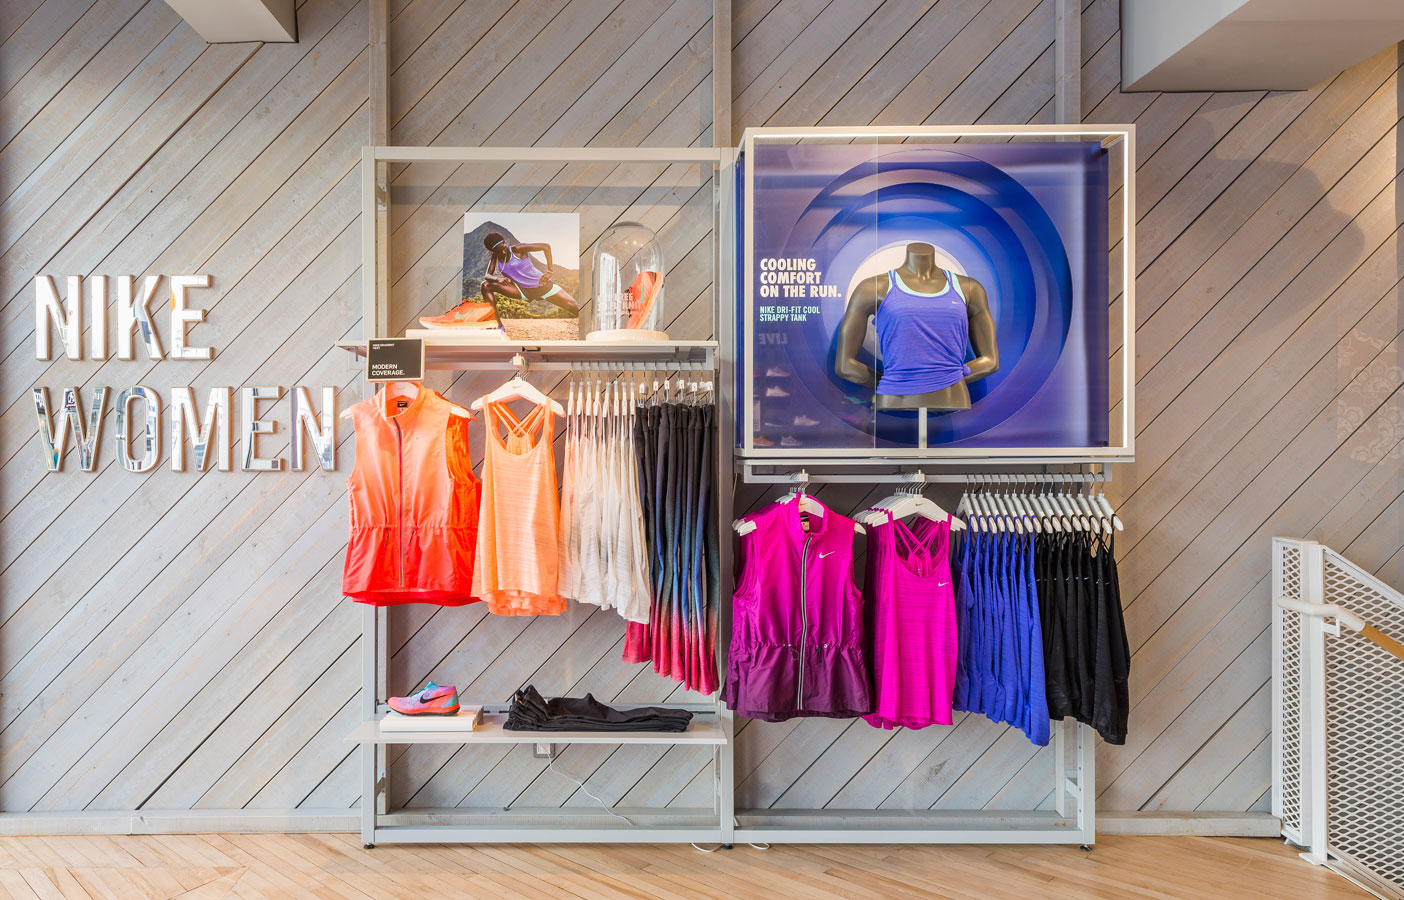 Aldworth James & Bond | Nike Women Store, London - CNC signage using mirrored acrylic